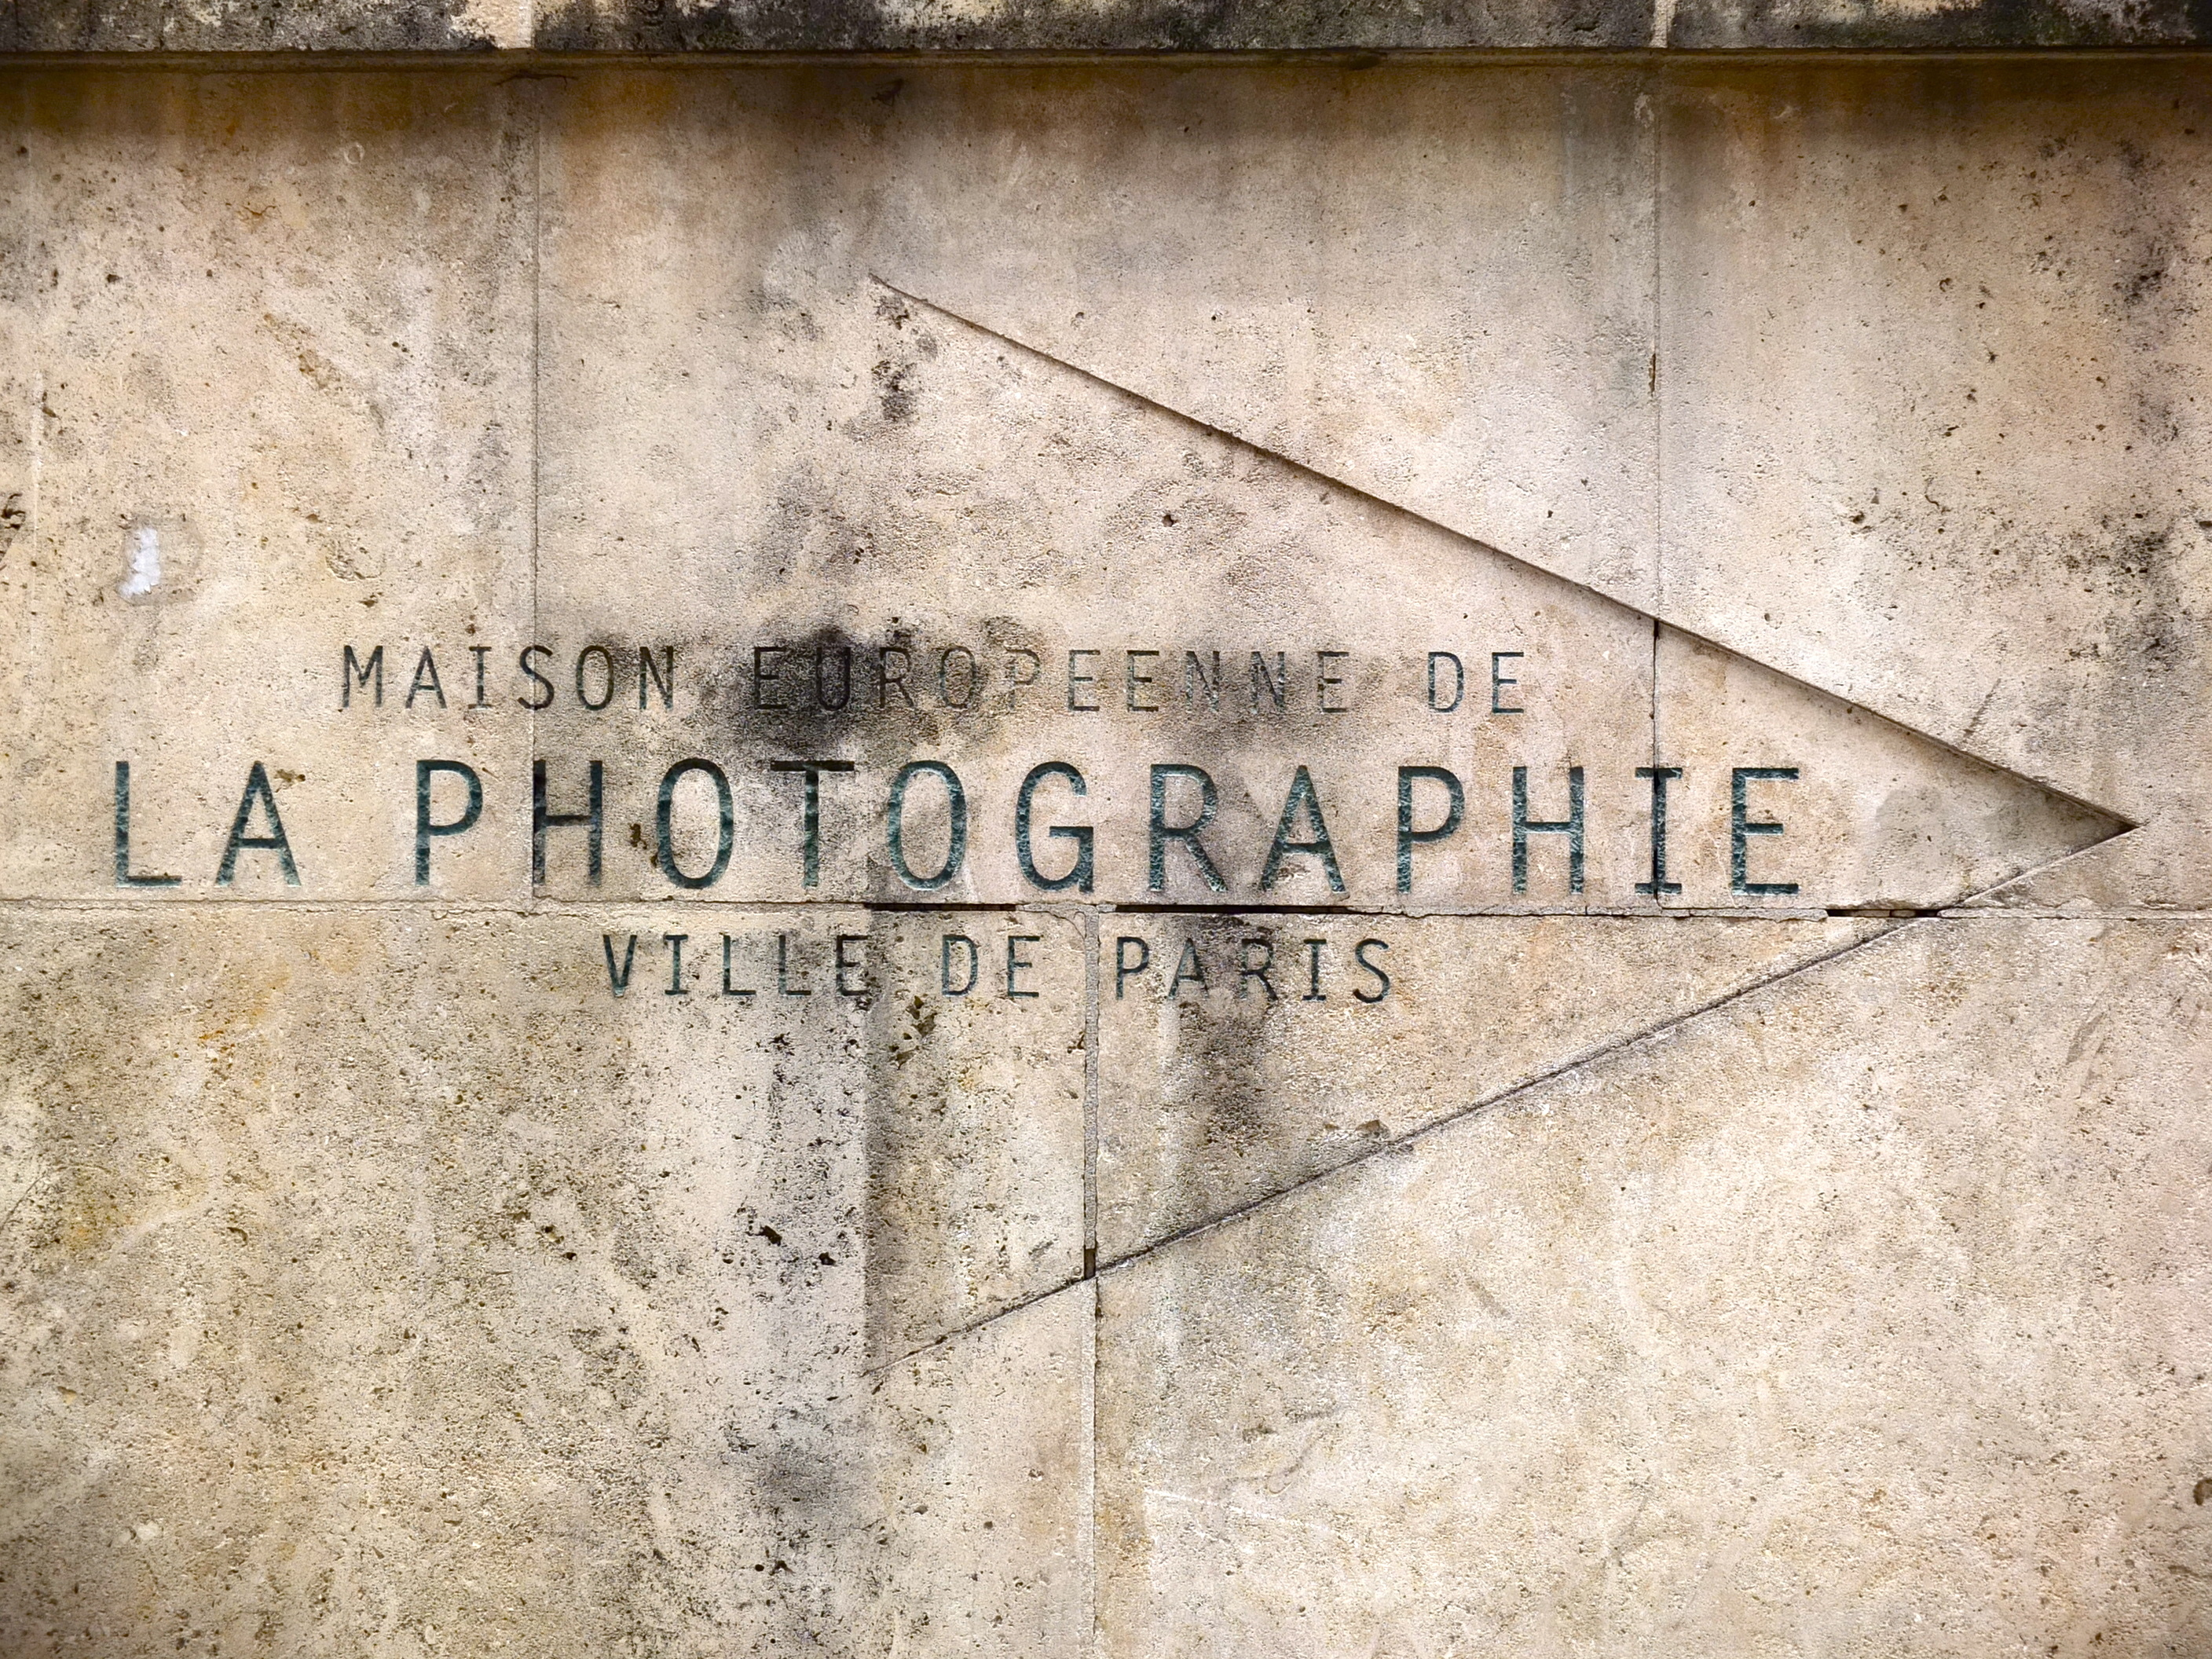 Maison europ enne de la photographie mep museums in le for La photographie